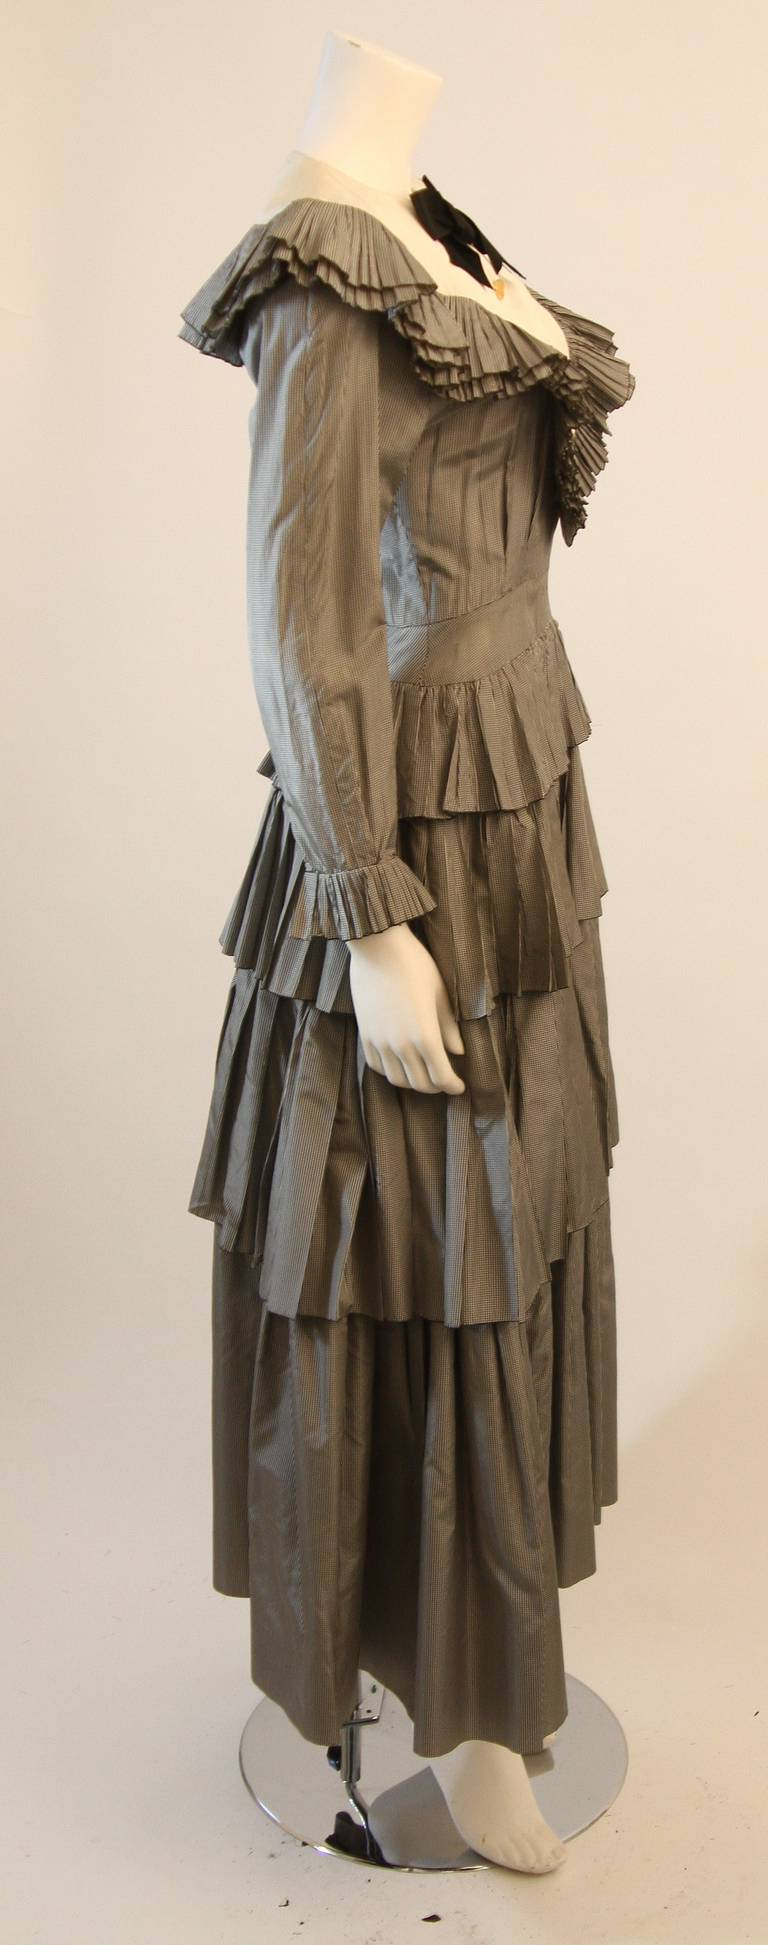 Chanel Edwardian Tiered Ruffle Gingham Gown with Black Bow 5